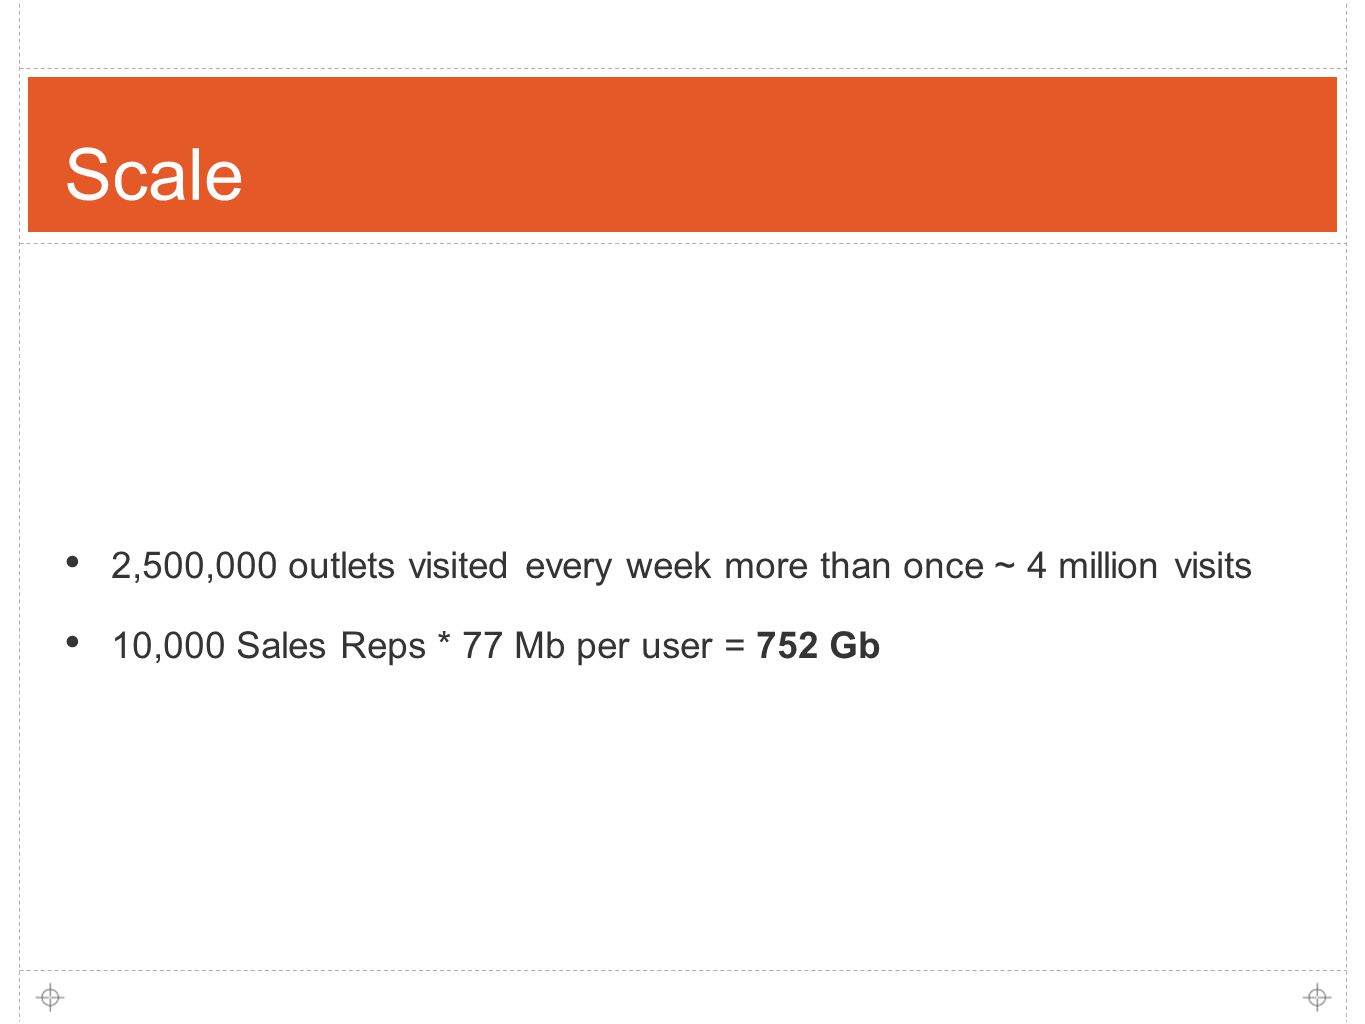 5 Scale 2,500,000 outlets visited every week more than once ~ 4 million visits 10,000 Sales Reps * 77 Mb per user = 752 Gb